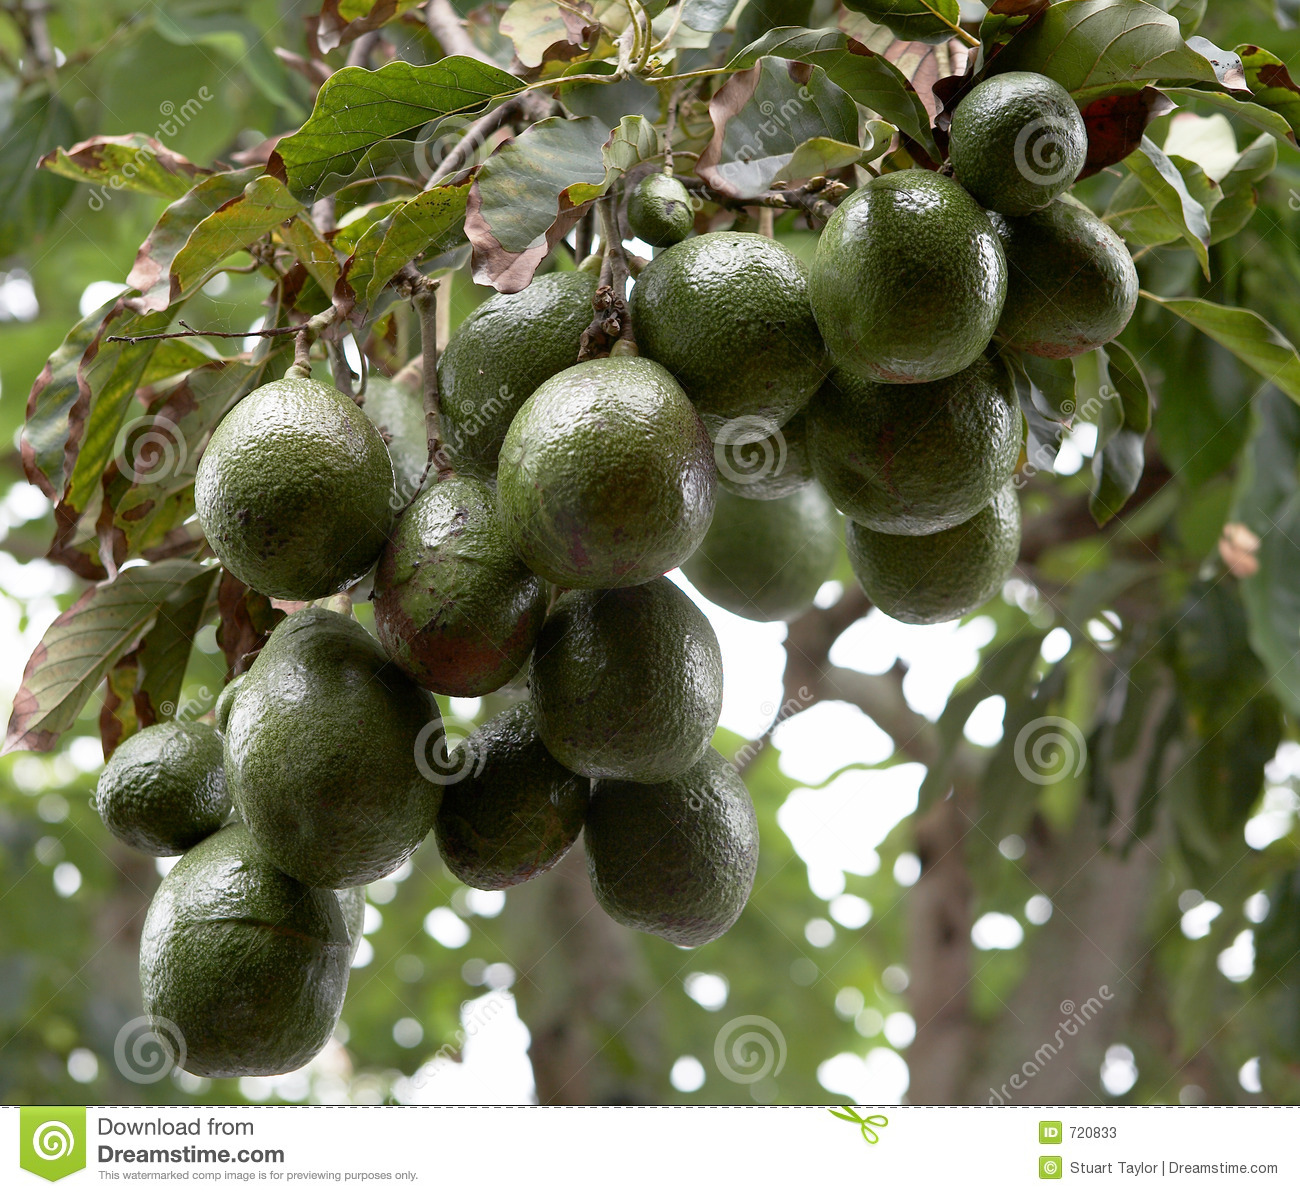 Avocado Boom Avocado Tree Stock Image Image Of Orchard Fruit Leaves 720833